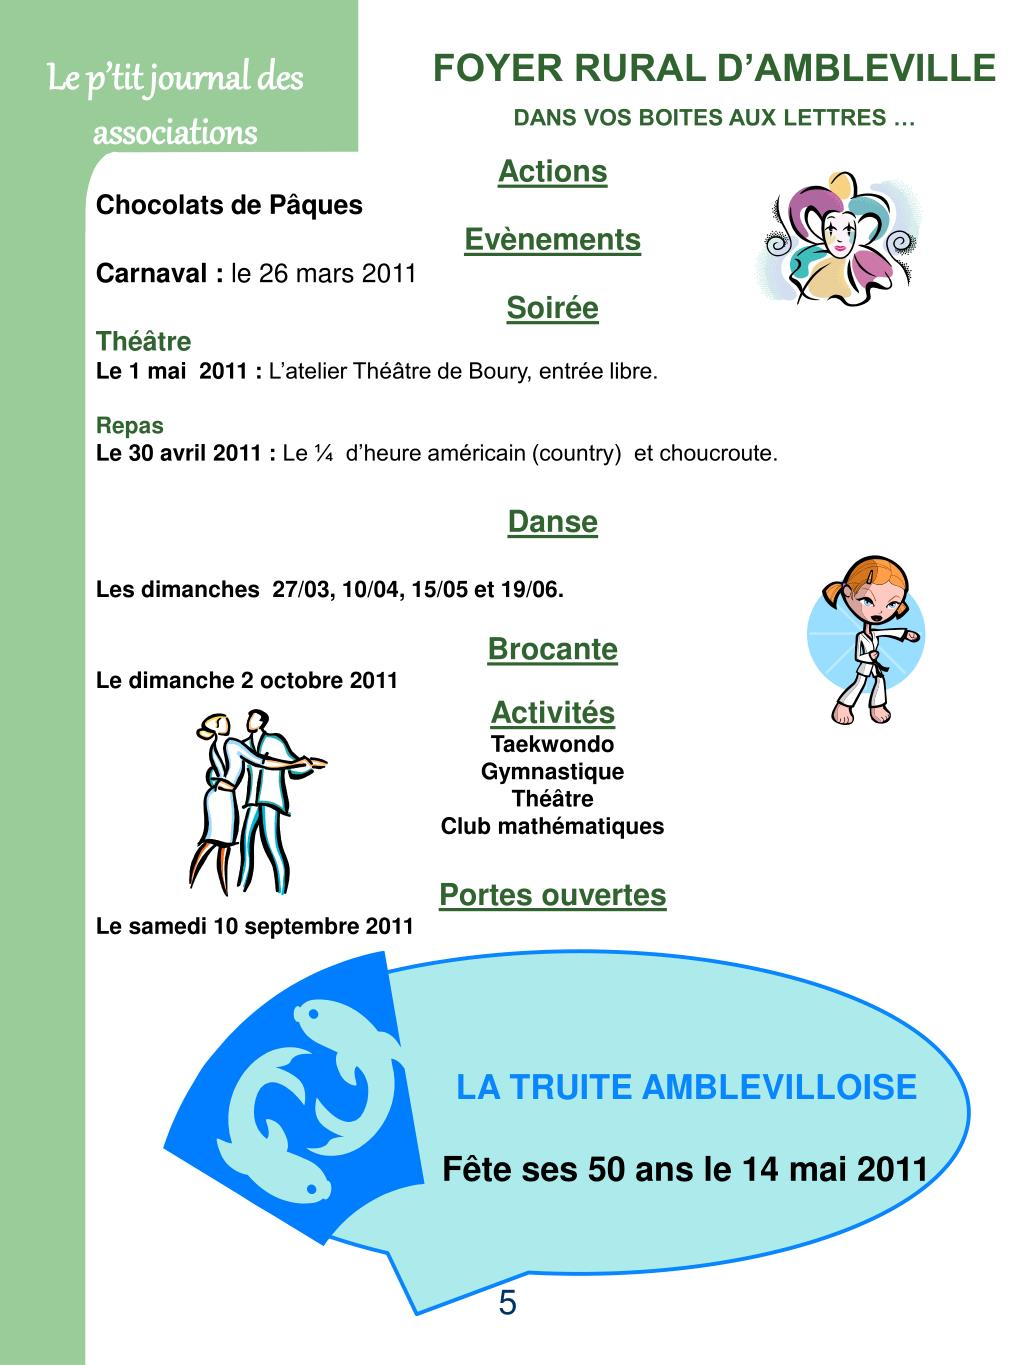 Le p'tit journal des associations